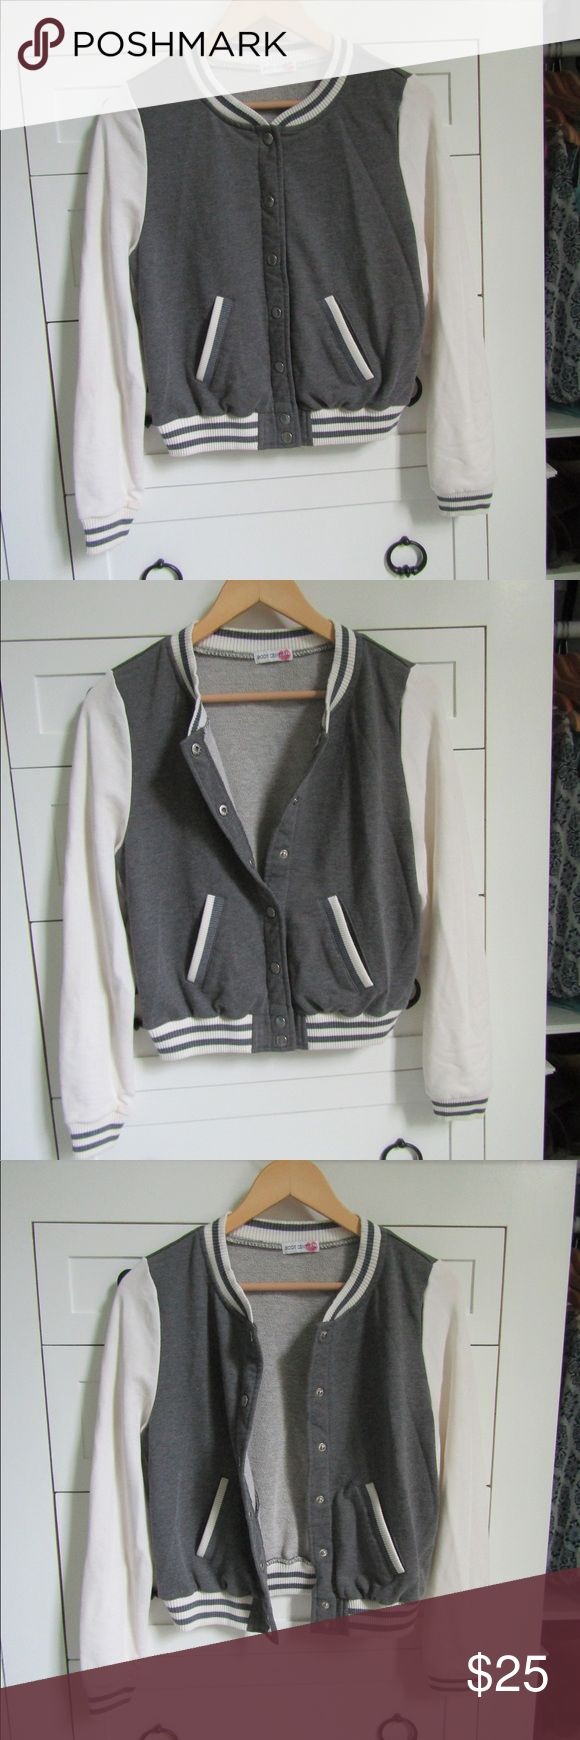 Grey and White Sporty Bomber Jacket Bomber jacket that goes with almost anything sporty. A quick add to an outfit. Buttons in the front and is plain and simple. Has 2 pockets as well Body Central Jackets & Coats Utility Jackets